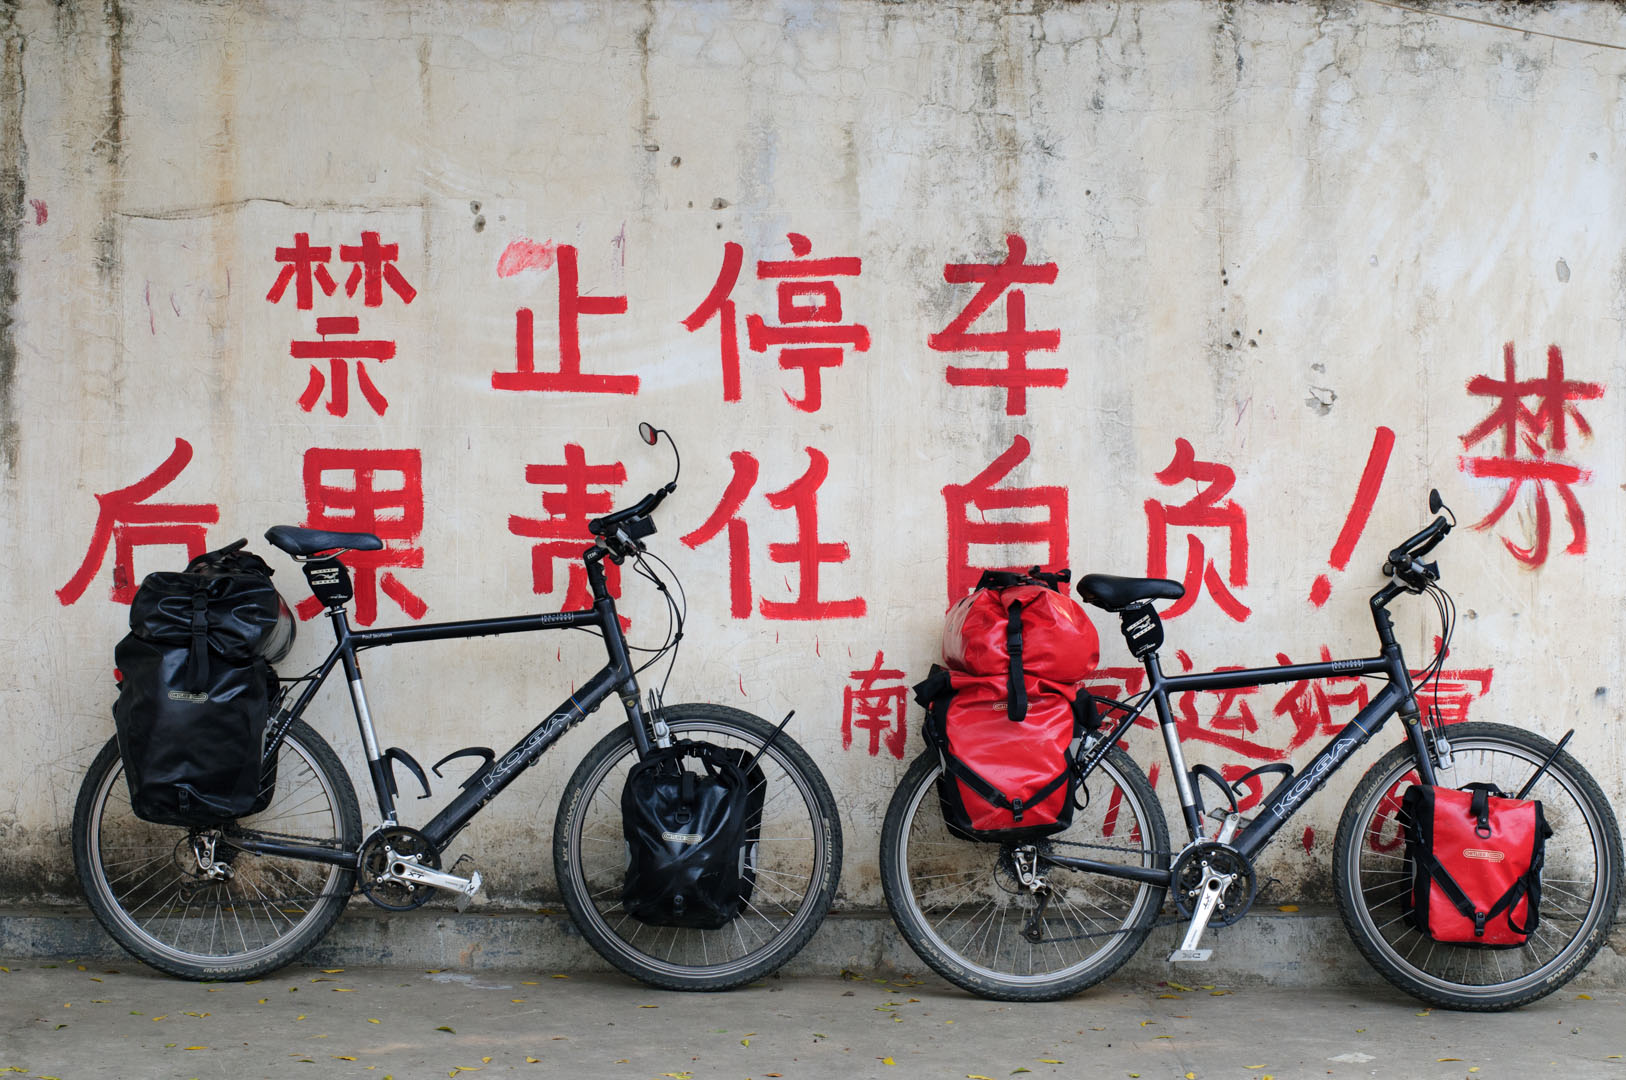 Touring bicycles are leaned against a wall with Chinese writing on it.